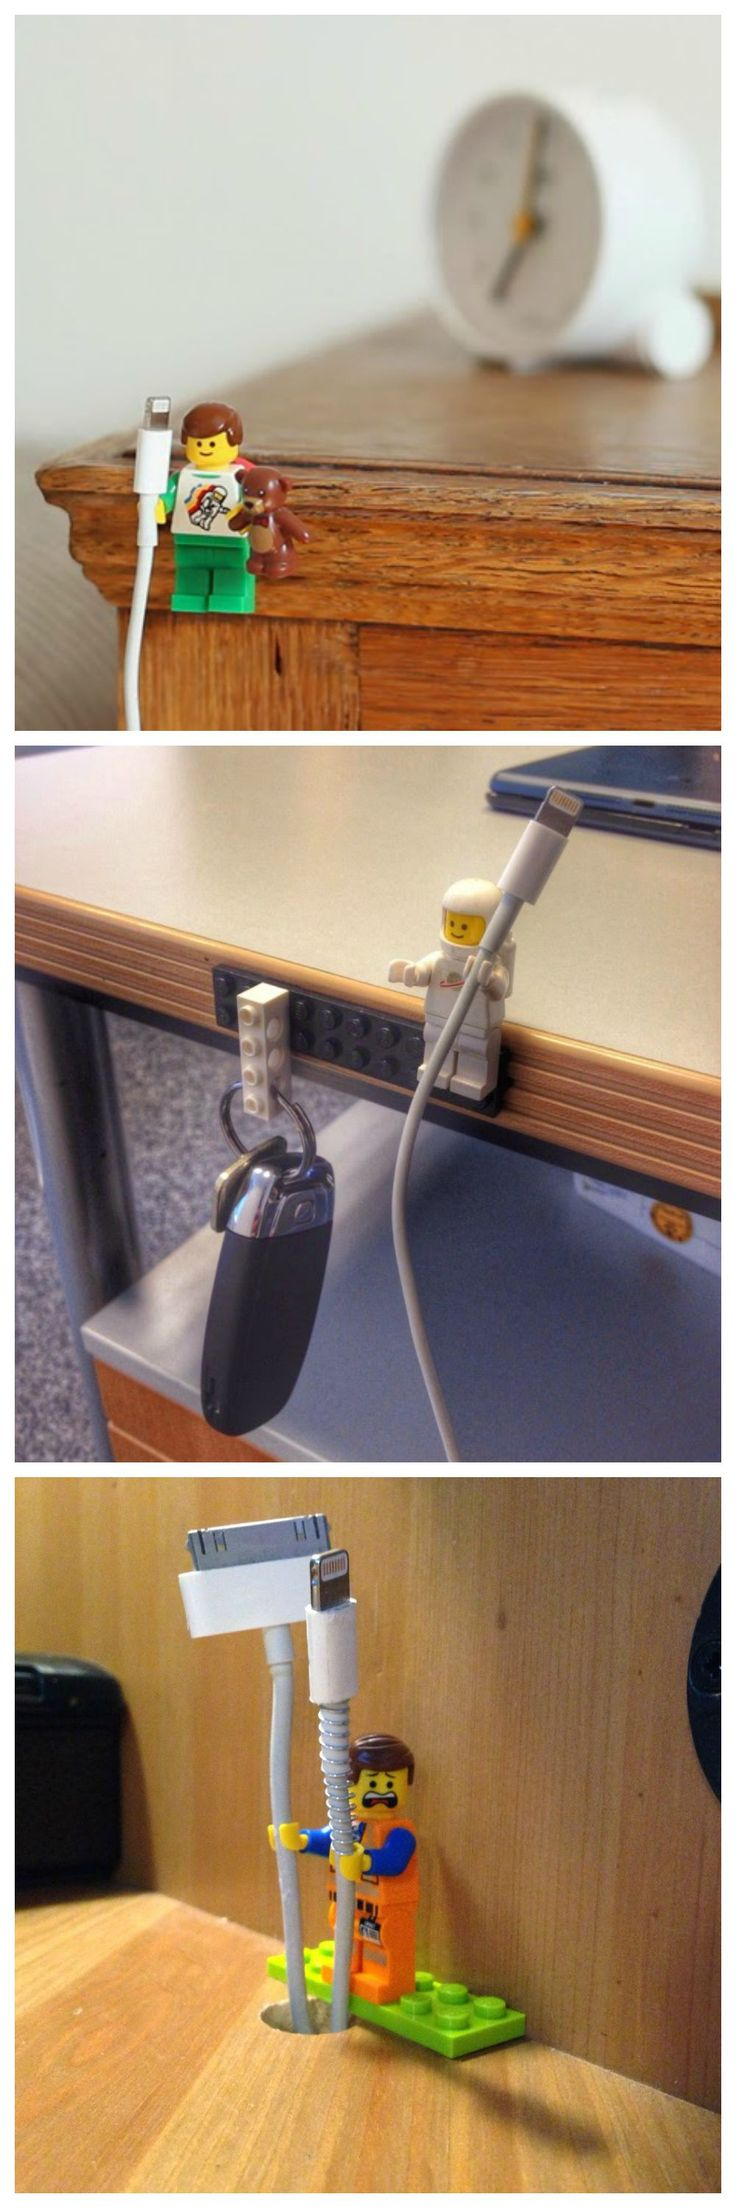 cable holders...